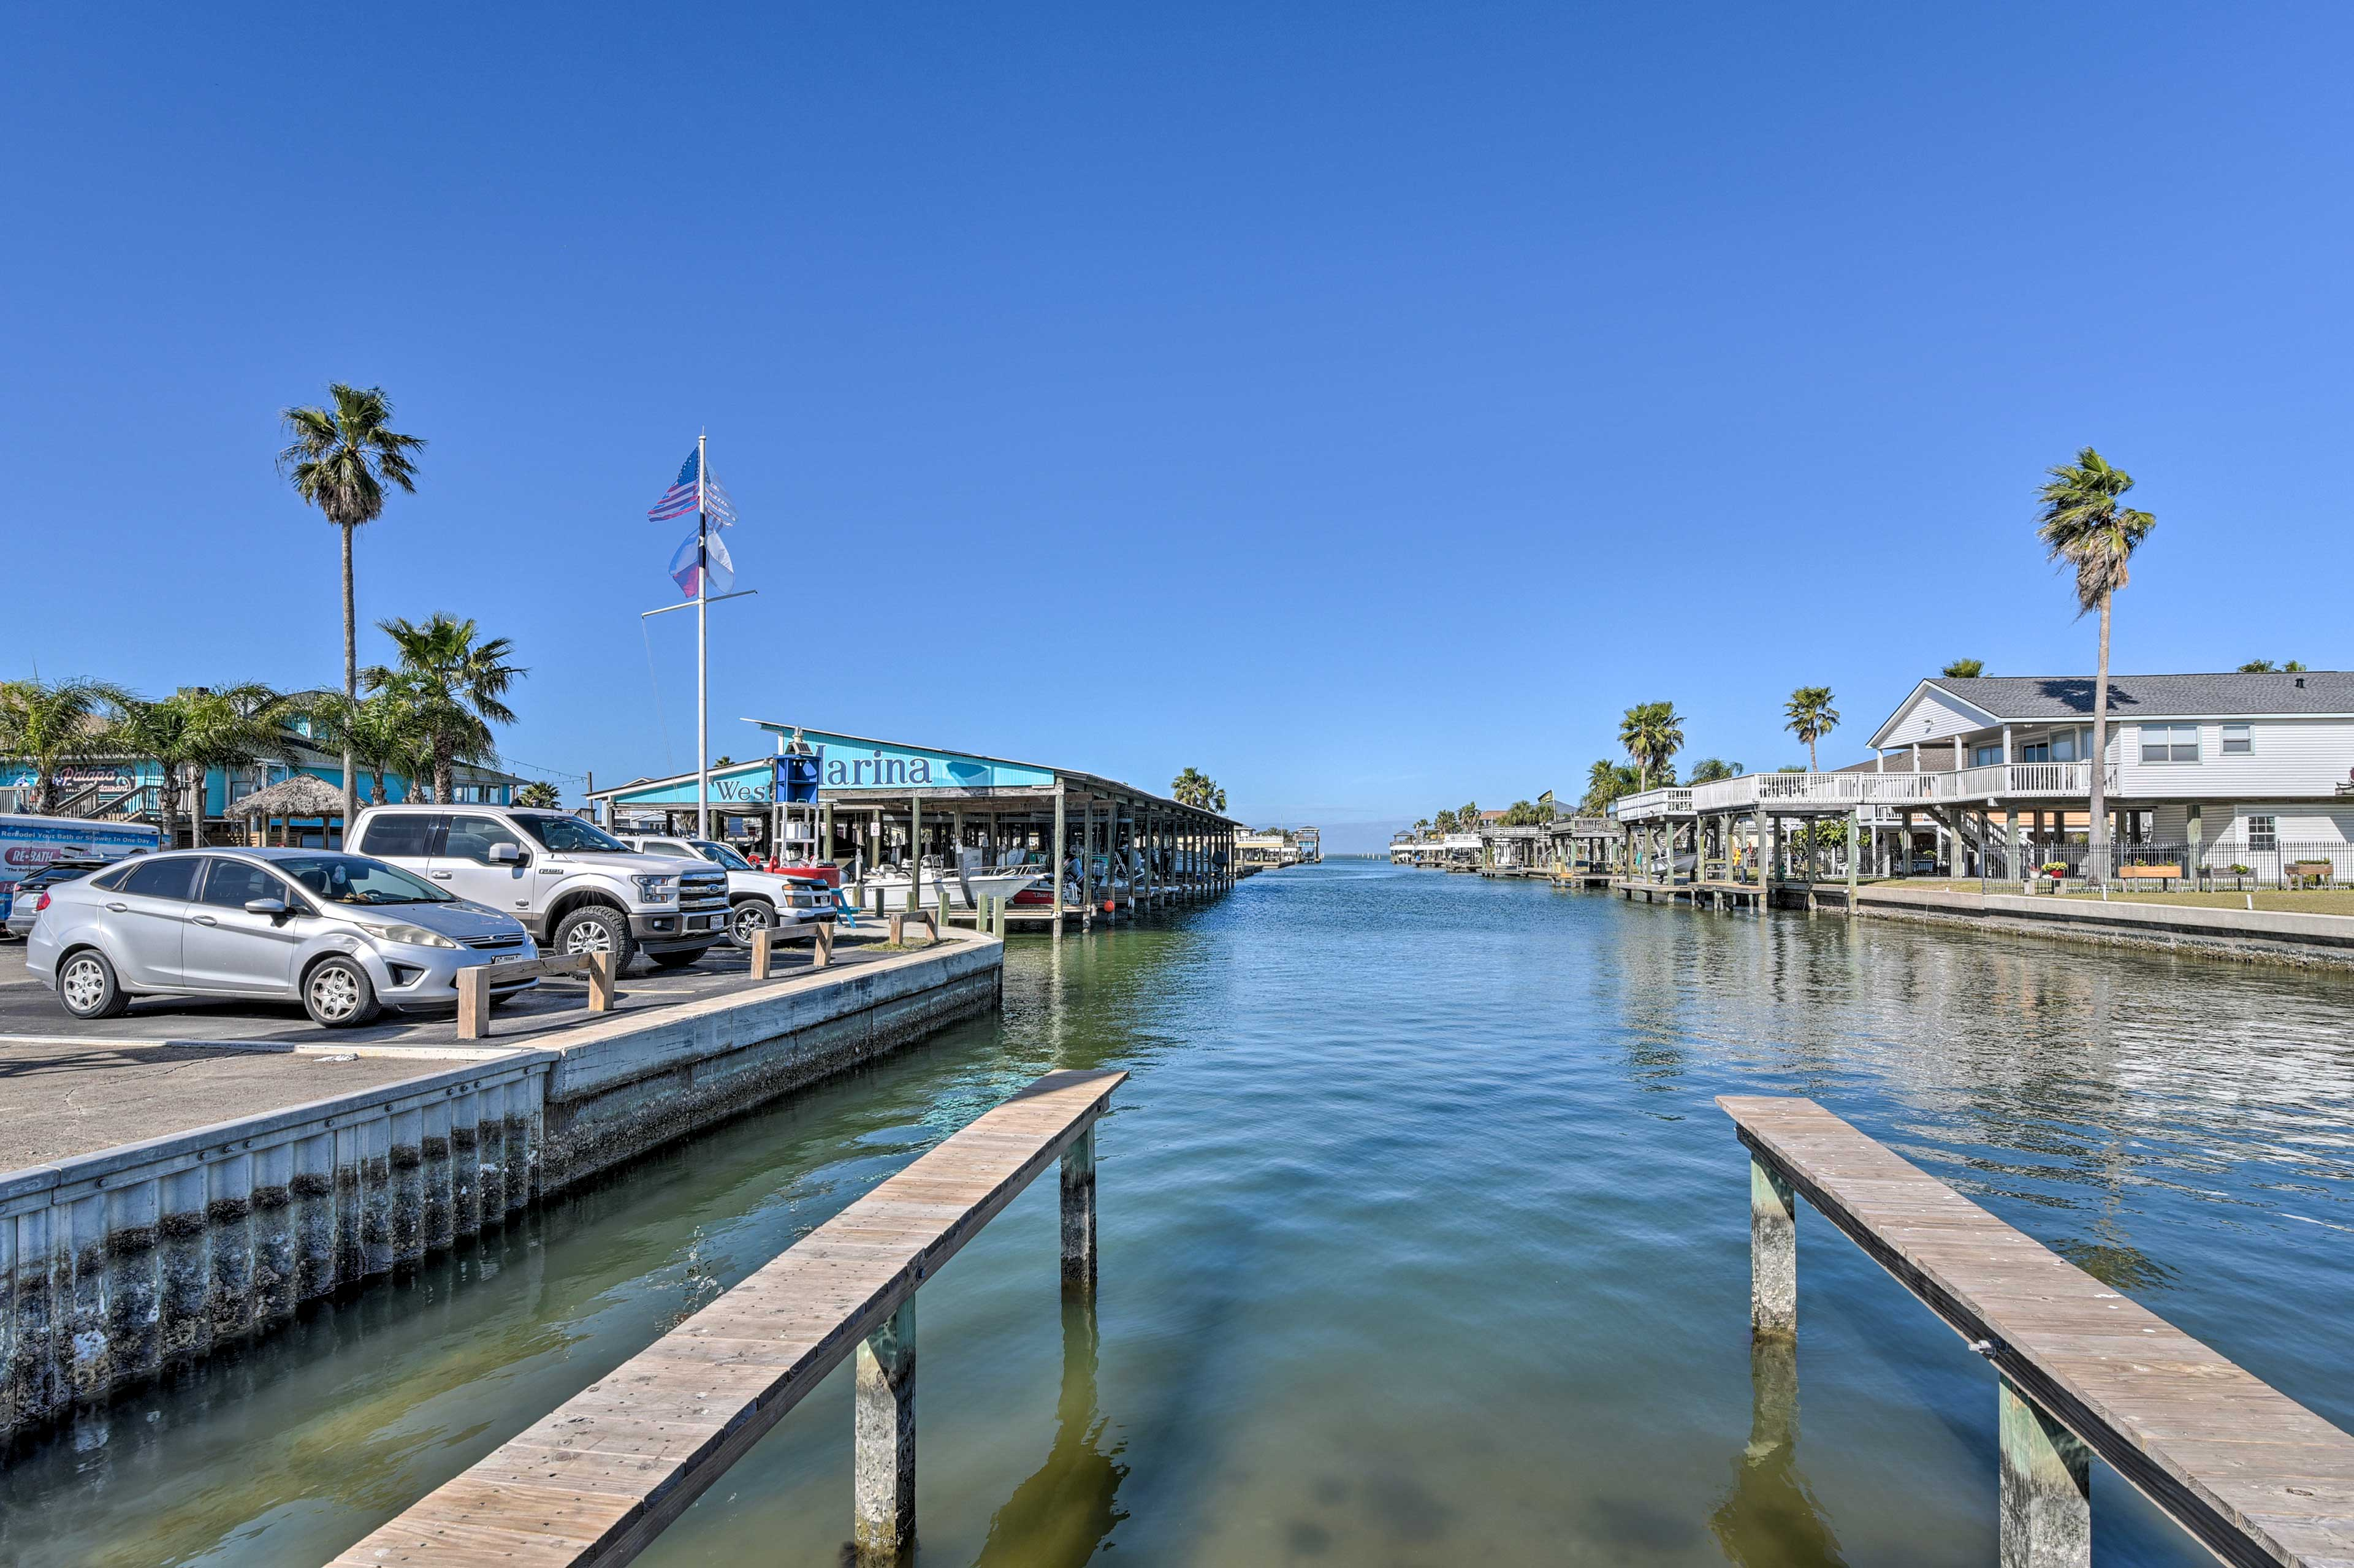 Community Marina & Boat Launch (Additional On-Site Fee May Apply)